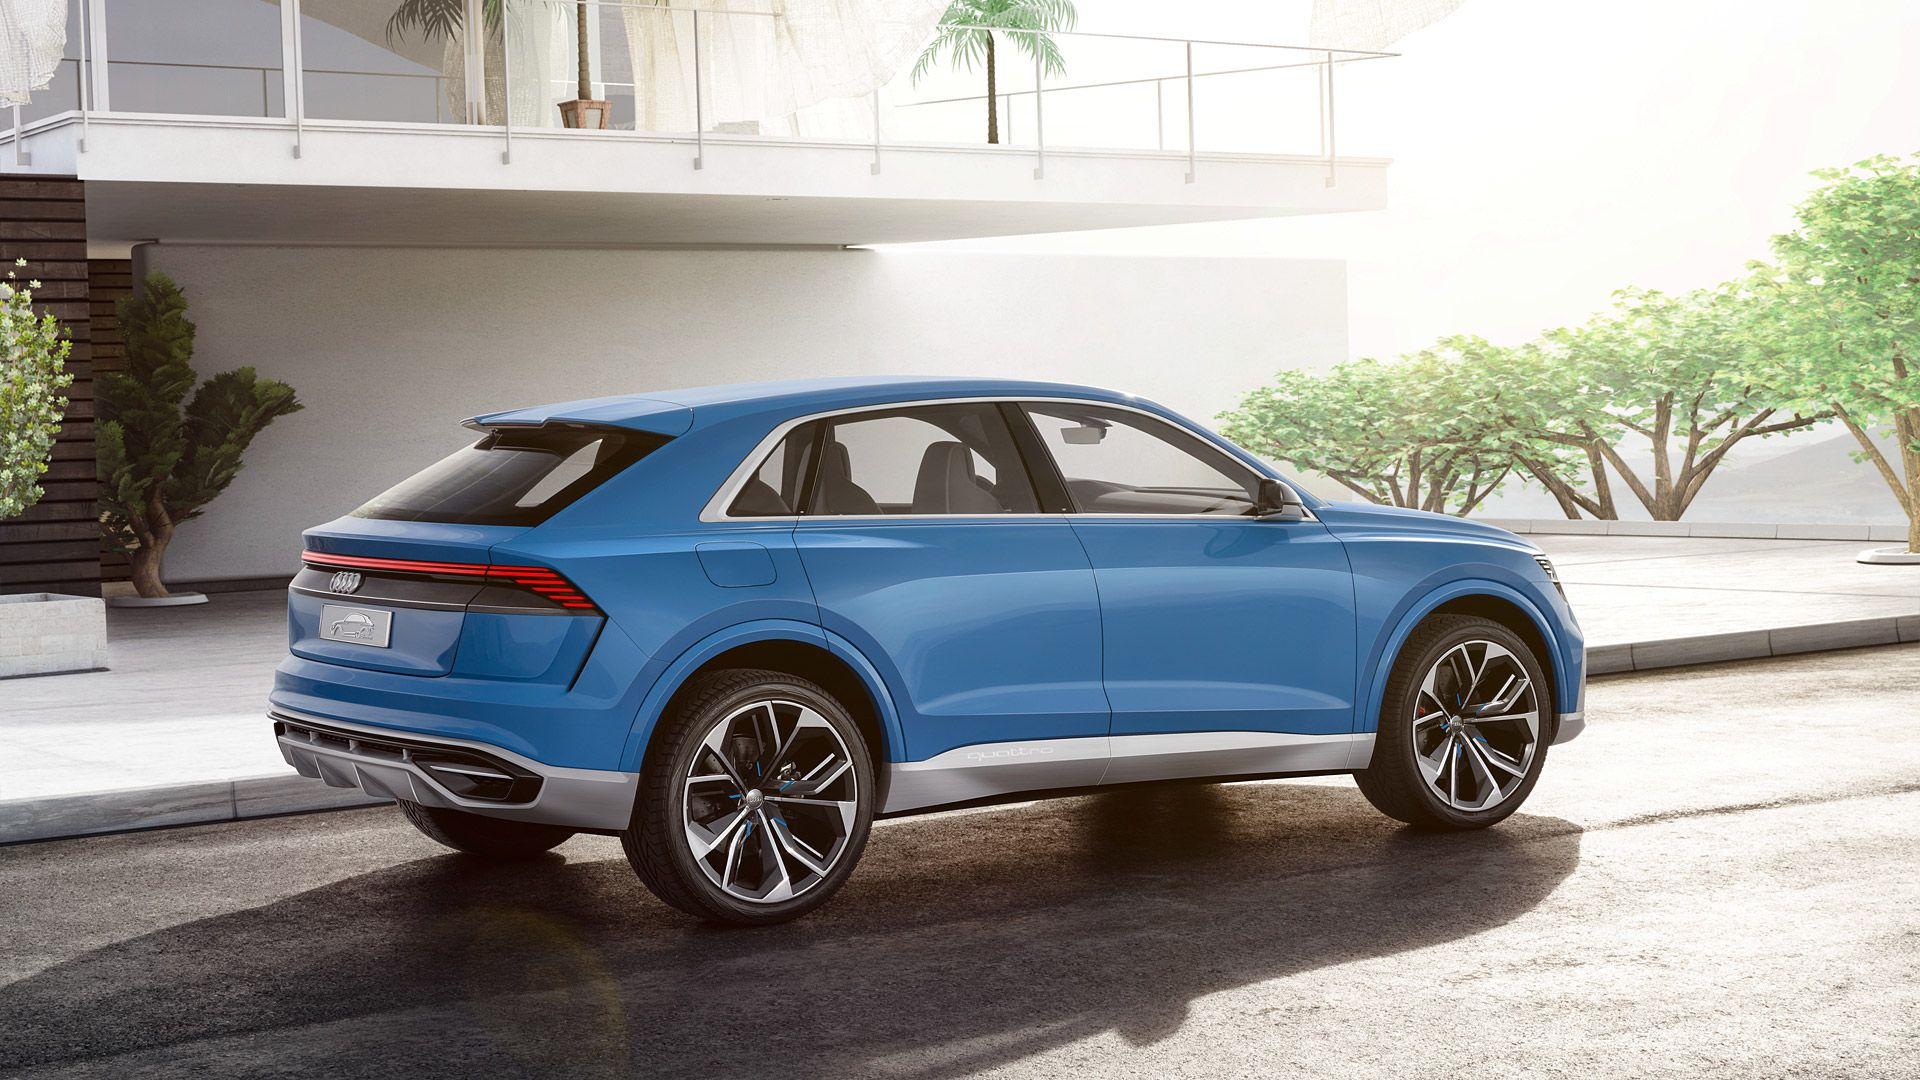 2017 Audi Q8 Concept Wallpapers & HD Image